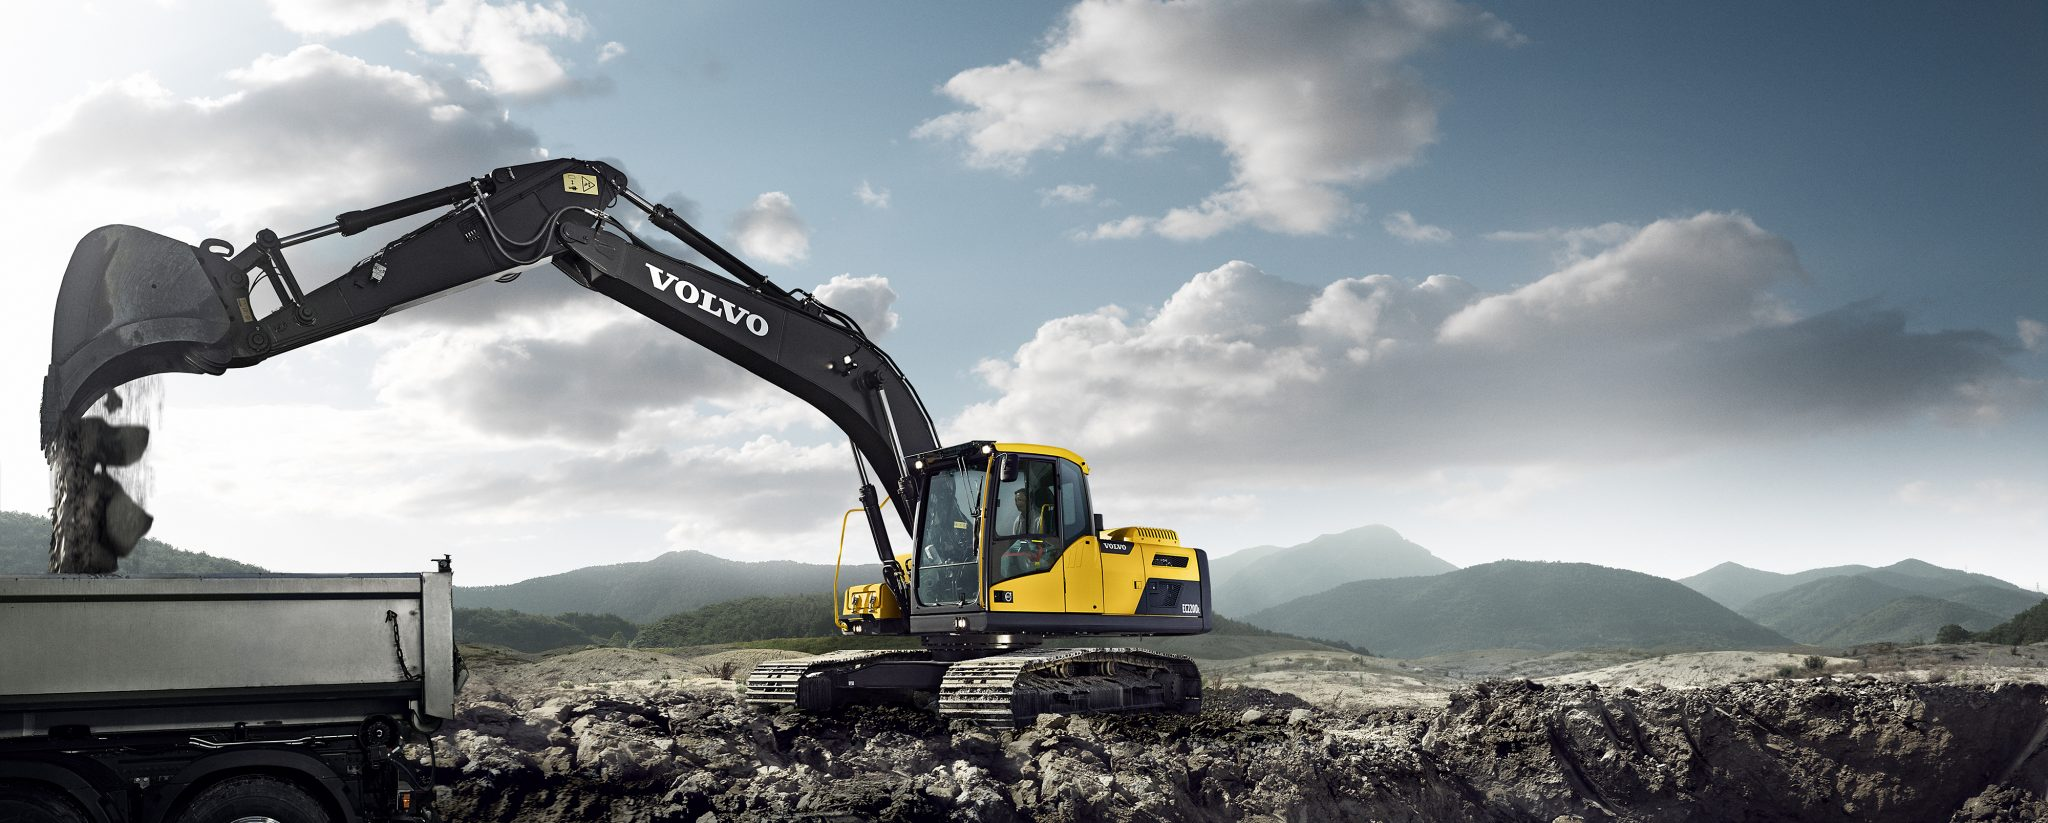 High Performance, Low Fuel Consumption - The Volvo EC220D Excavator 15